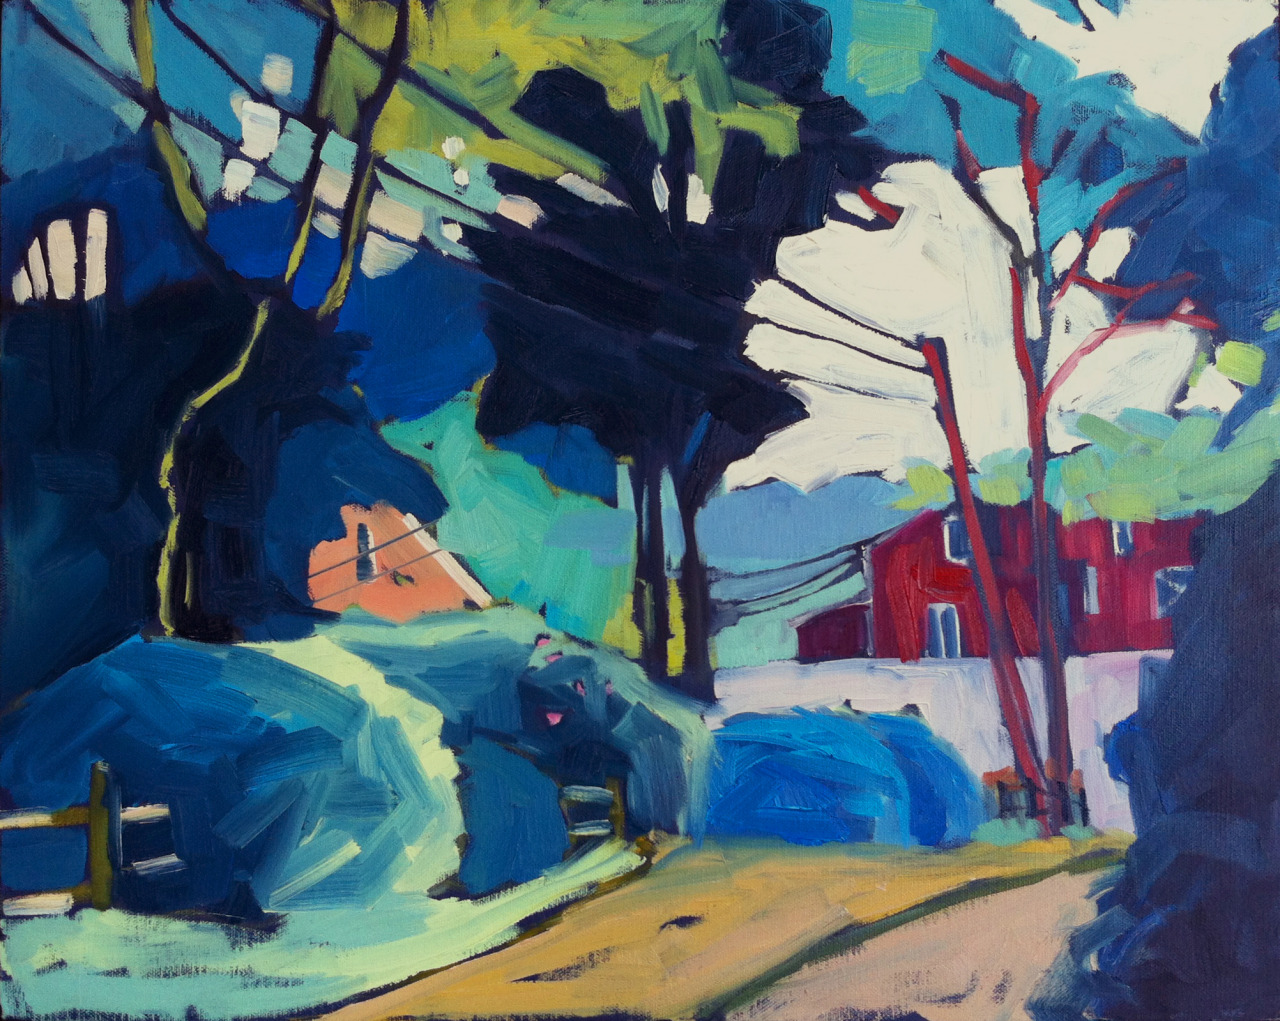 """Headed to the Harbor, 16""""x20"""", oil on canvas. This is another Wellfleet scene from last summer. Cottages tucked away behind the trees. Harbor buildings across the parking lot with water just beyond.   This painting will be for sale at the Cambridge School of Weston's """"Changing Lives with Art"""" fundraising auction. The auction is   on Saturday, April 27, 2013 in the Garthwaite Center for Science and Art."""